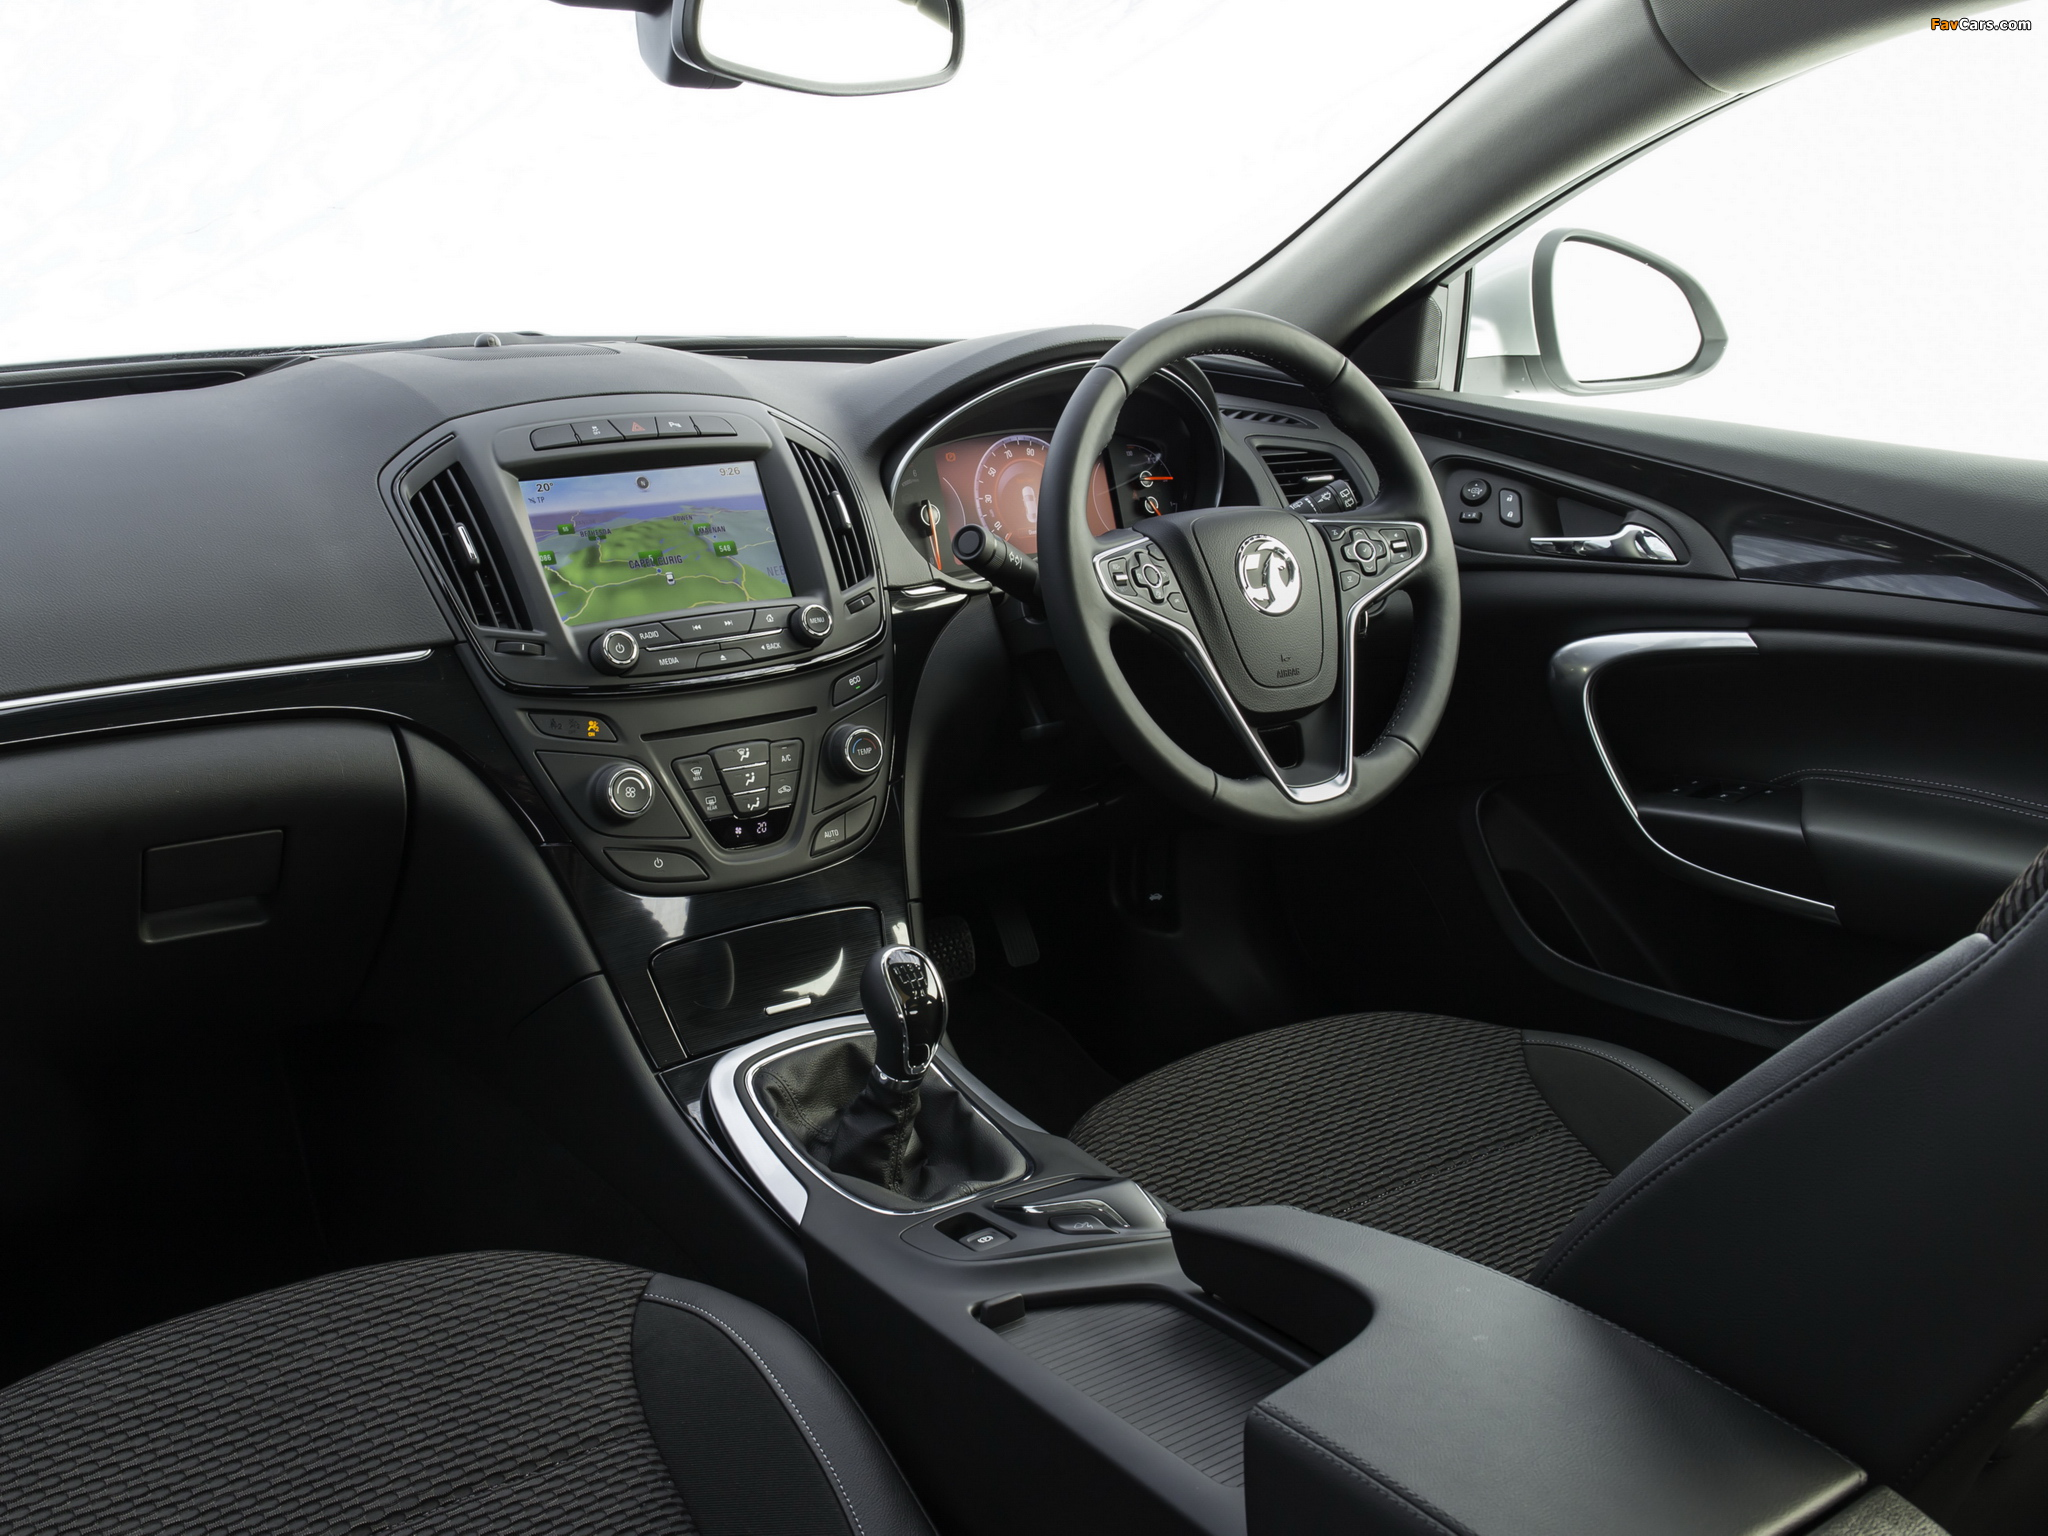 Vauxhall Insignia Country Tourer 2013 images (2048 x 1536)